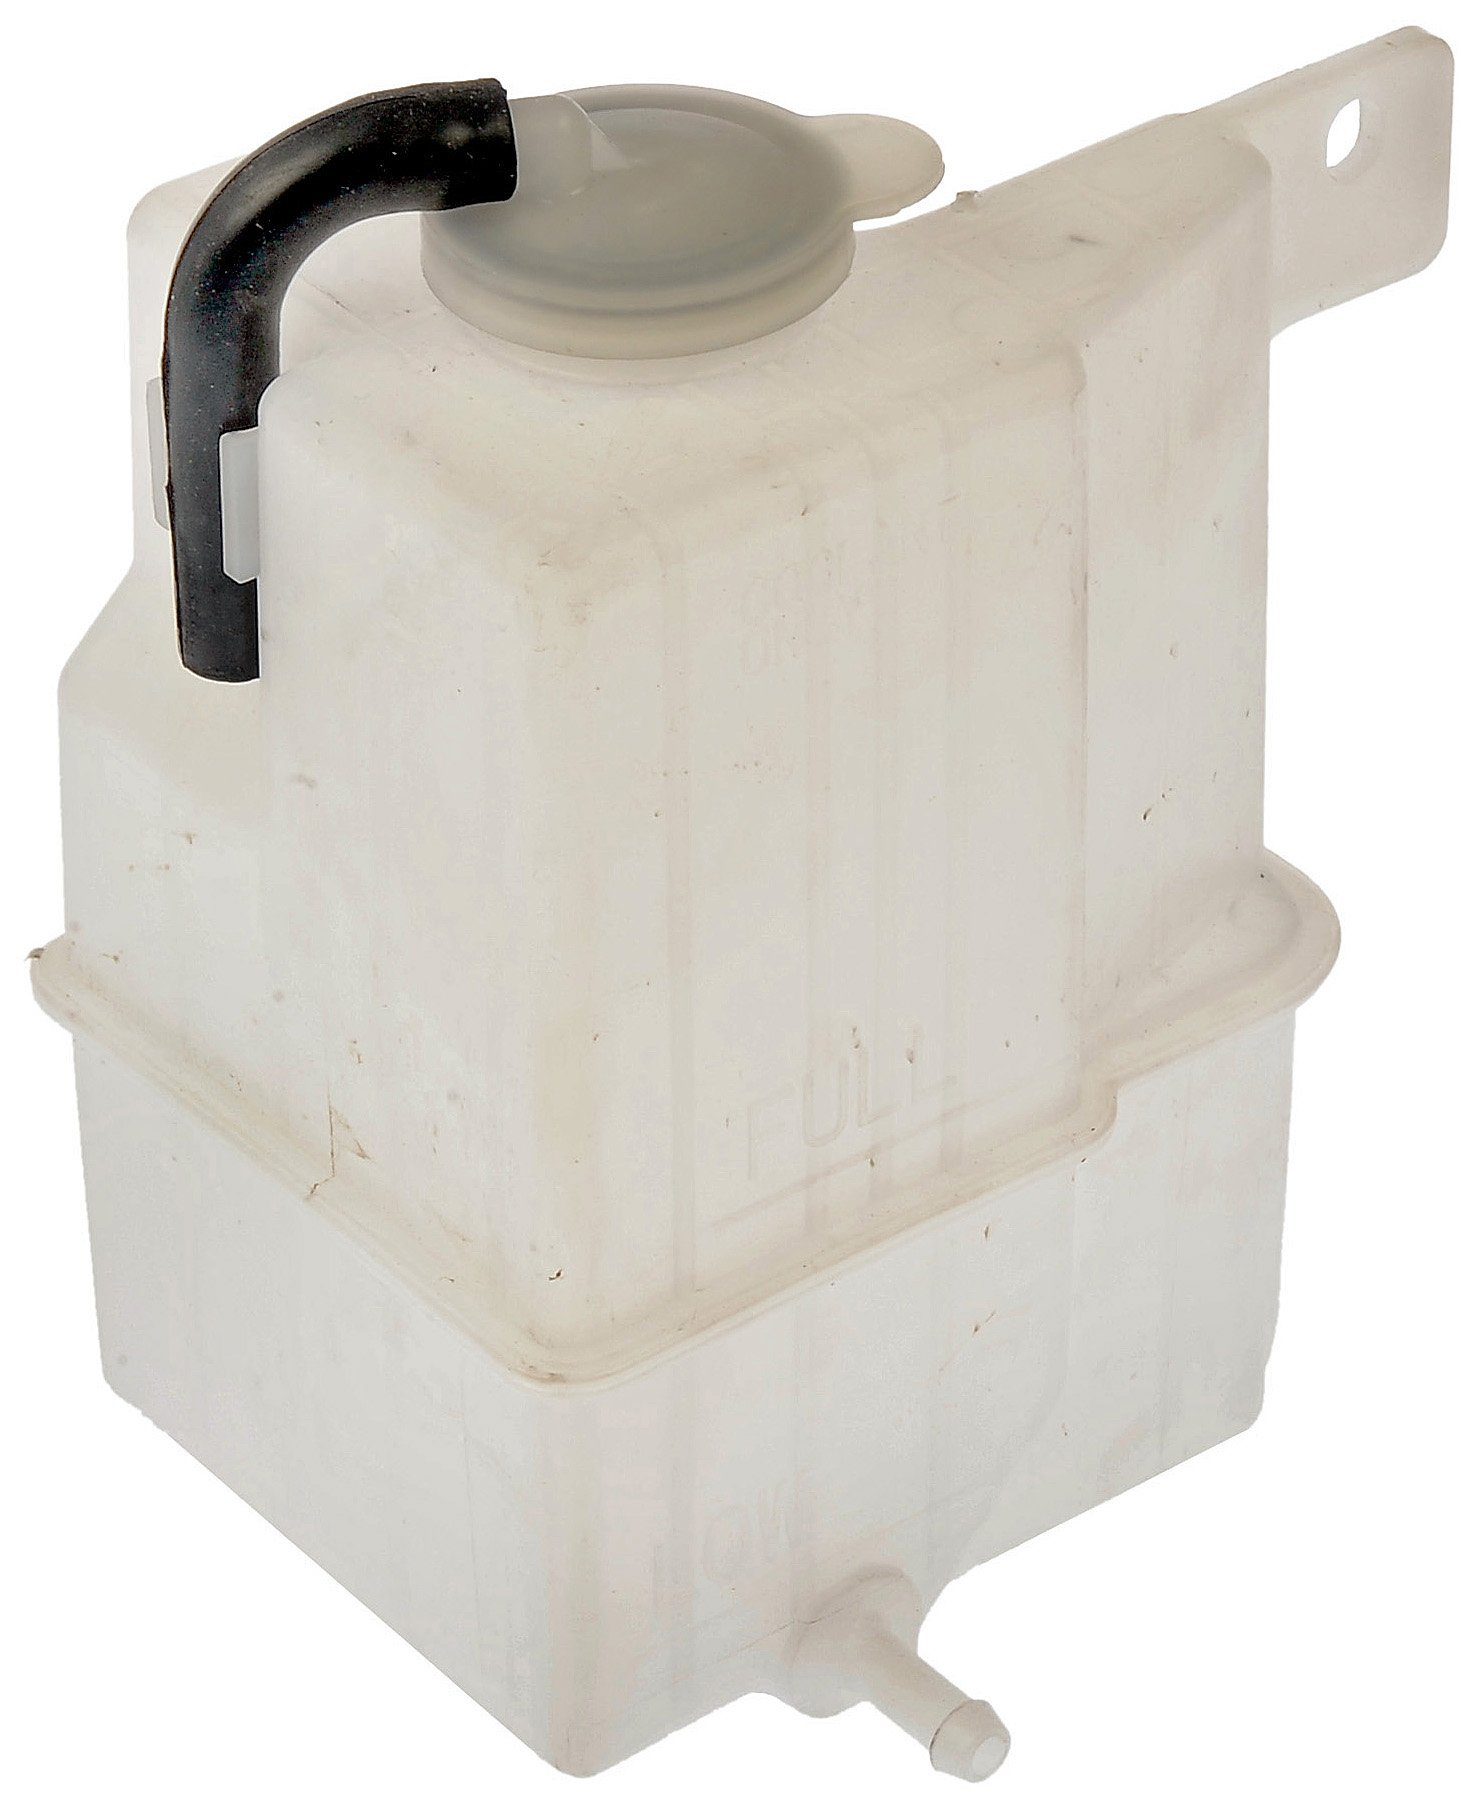 Dorman 603-507 Coolant Reservoir for Mazda Protege